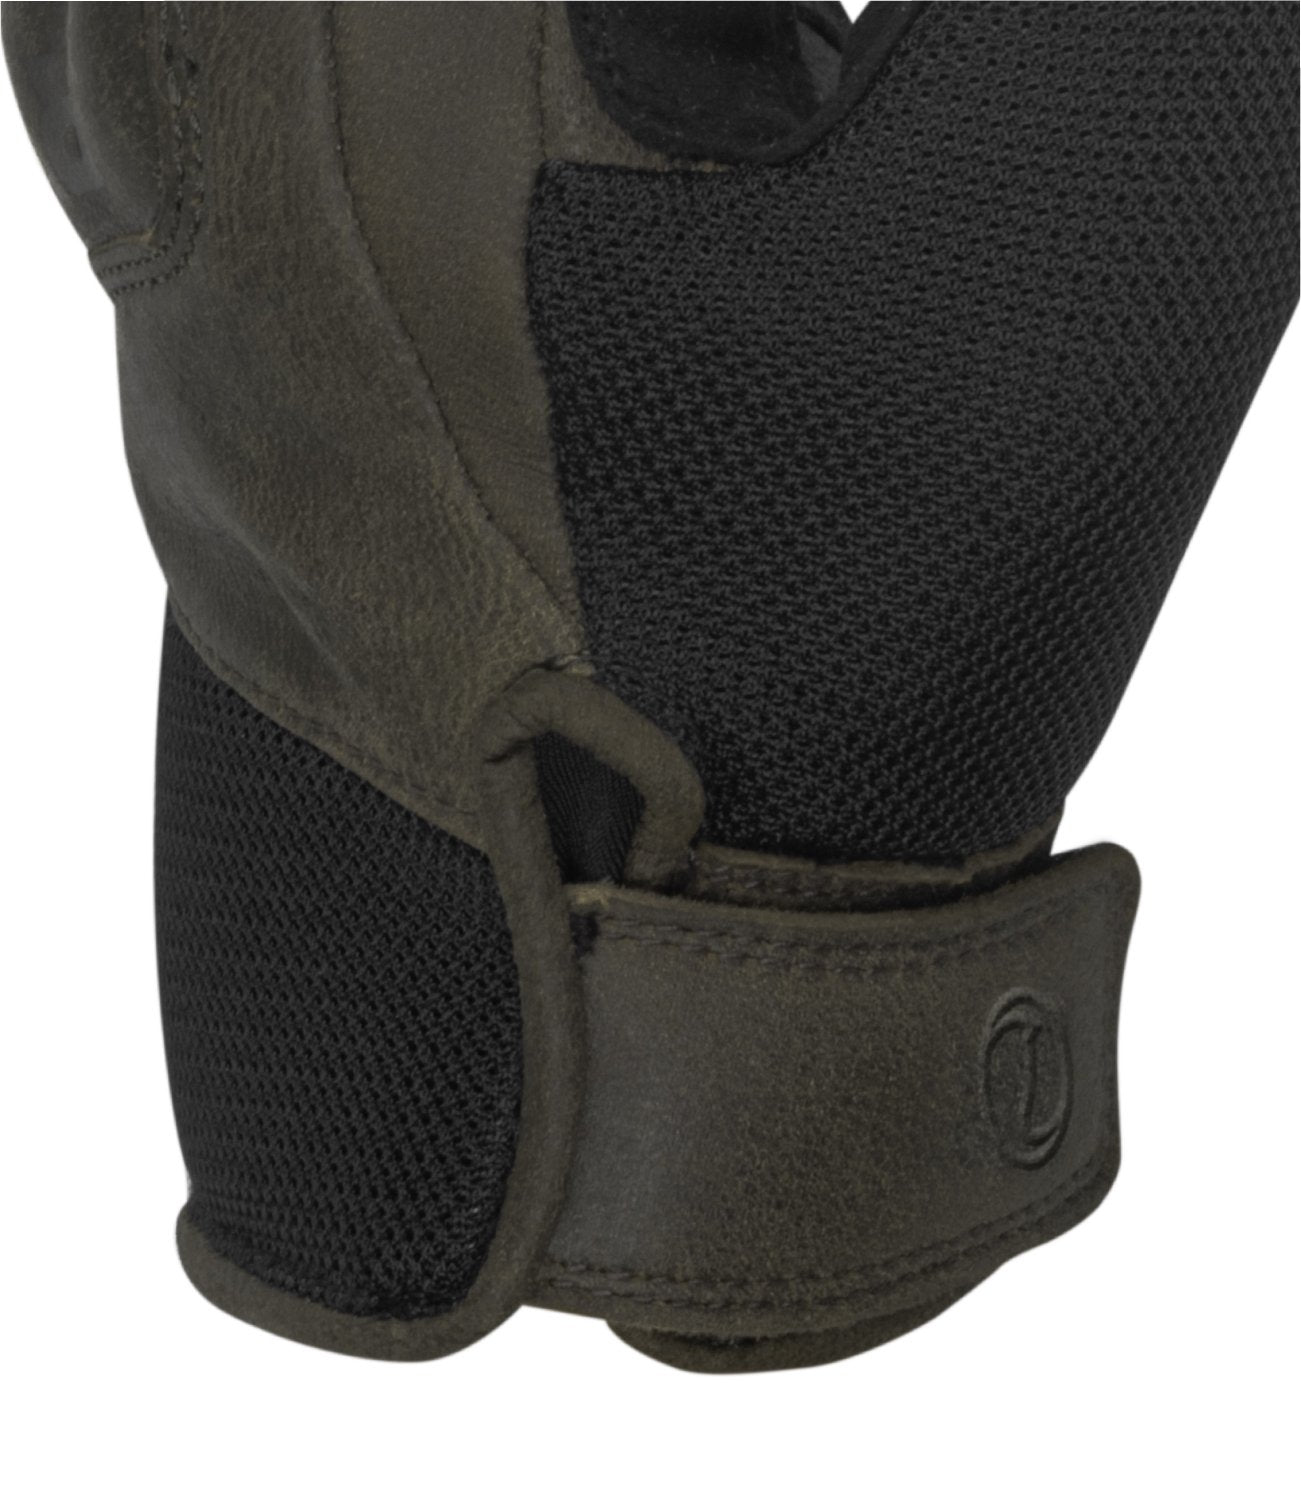 Rynox Urban Gloves Copper 9